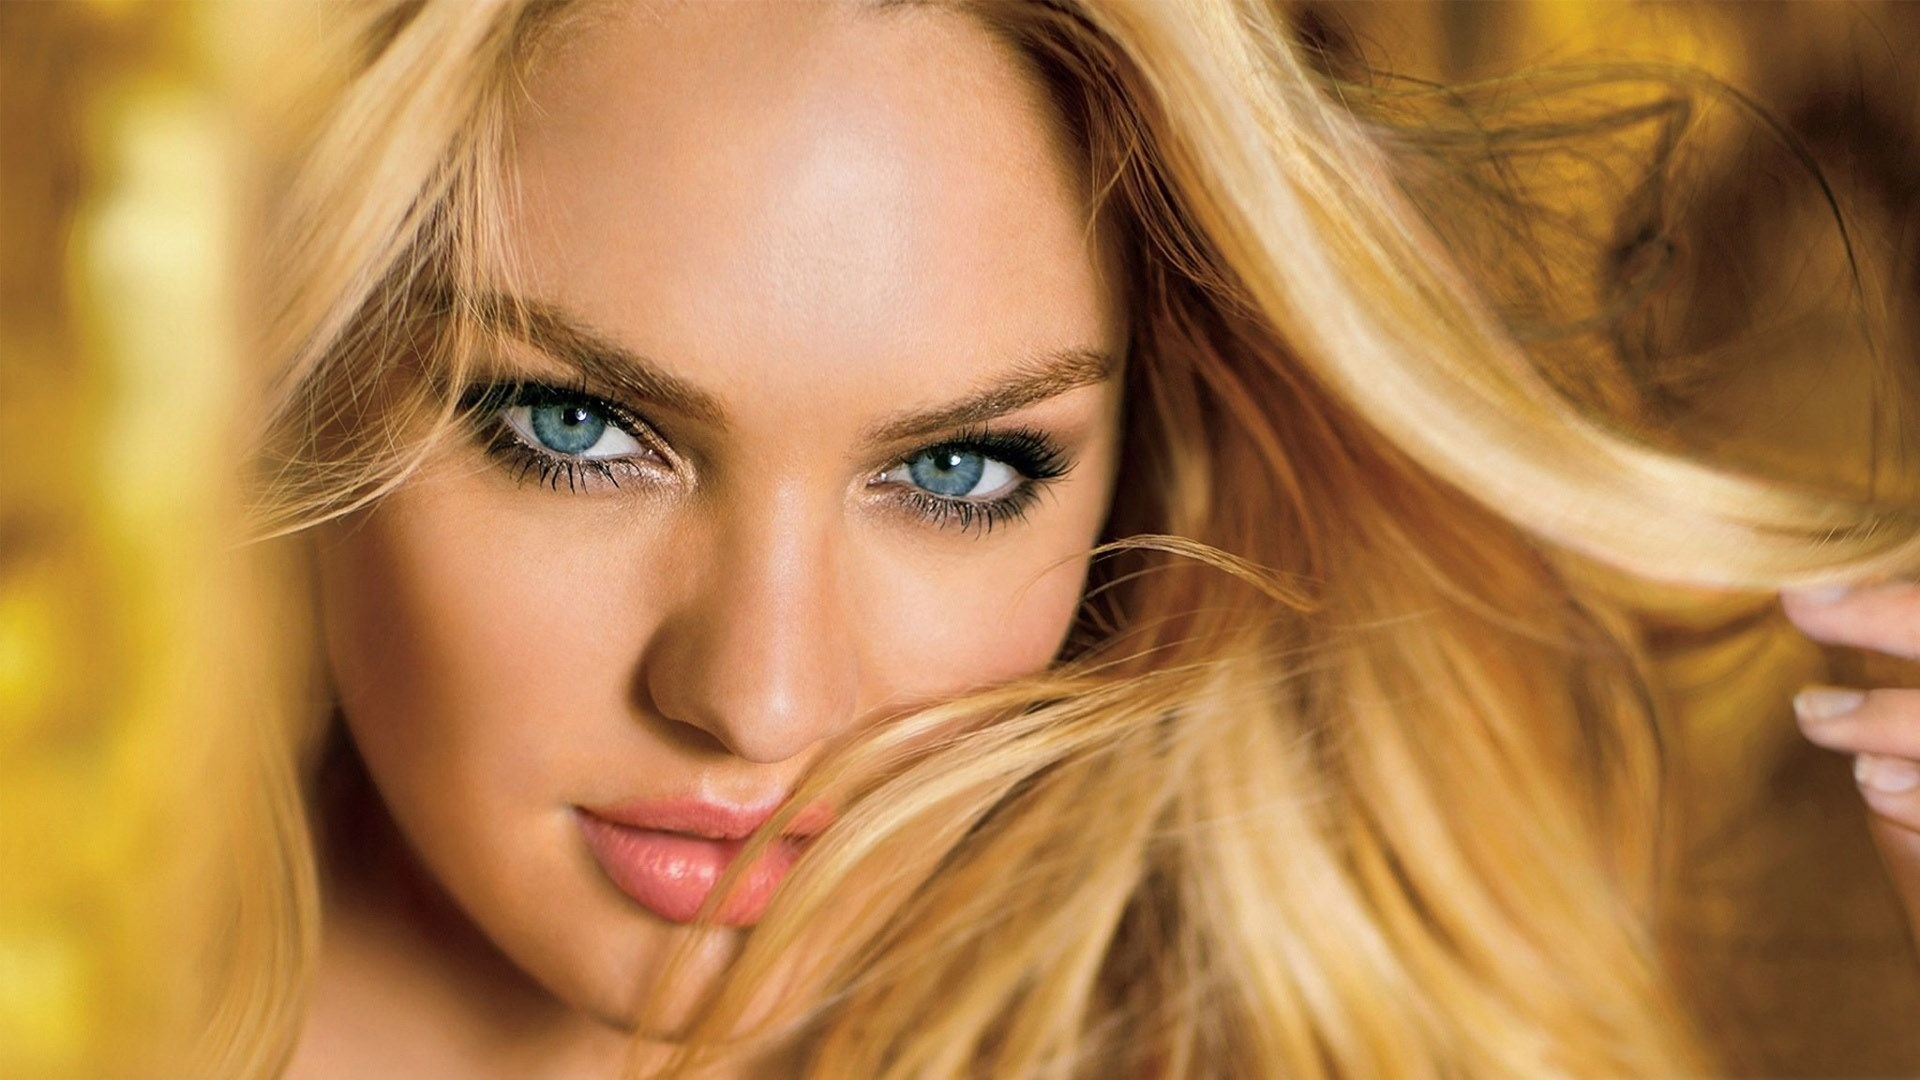 Candice Swanepoel Blonde Portrait